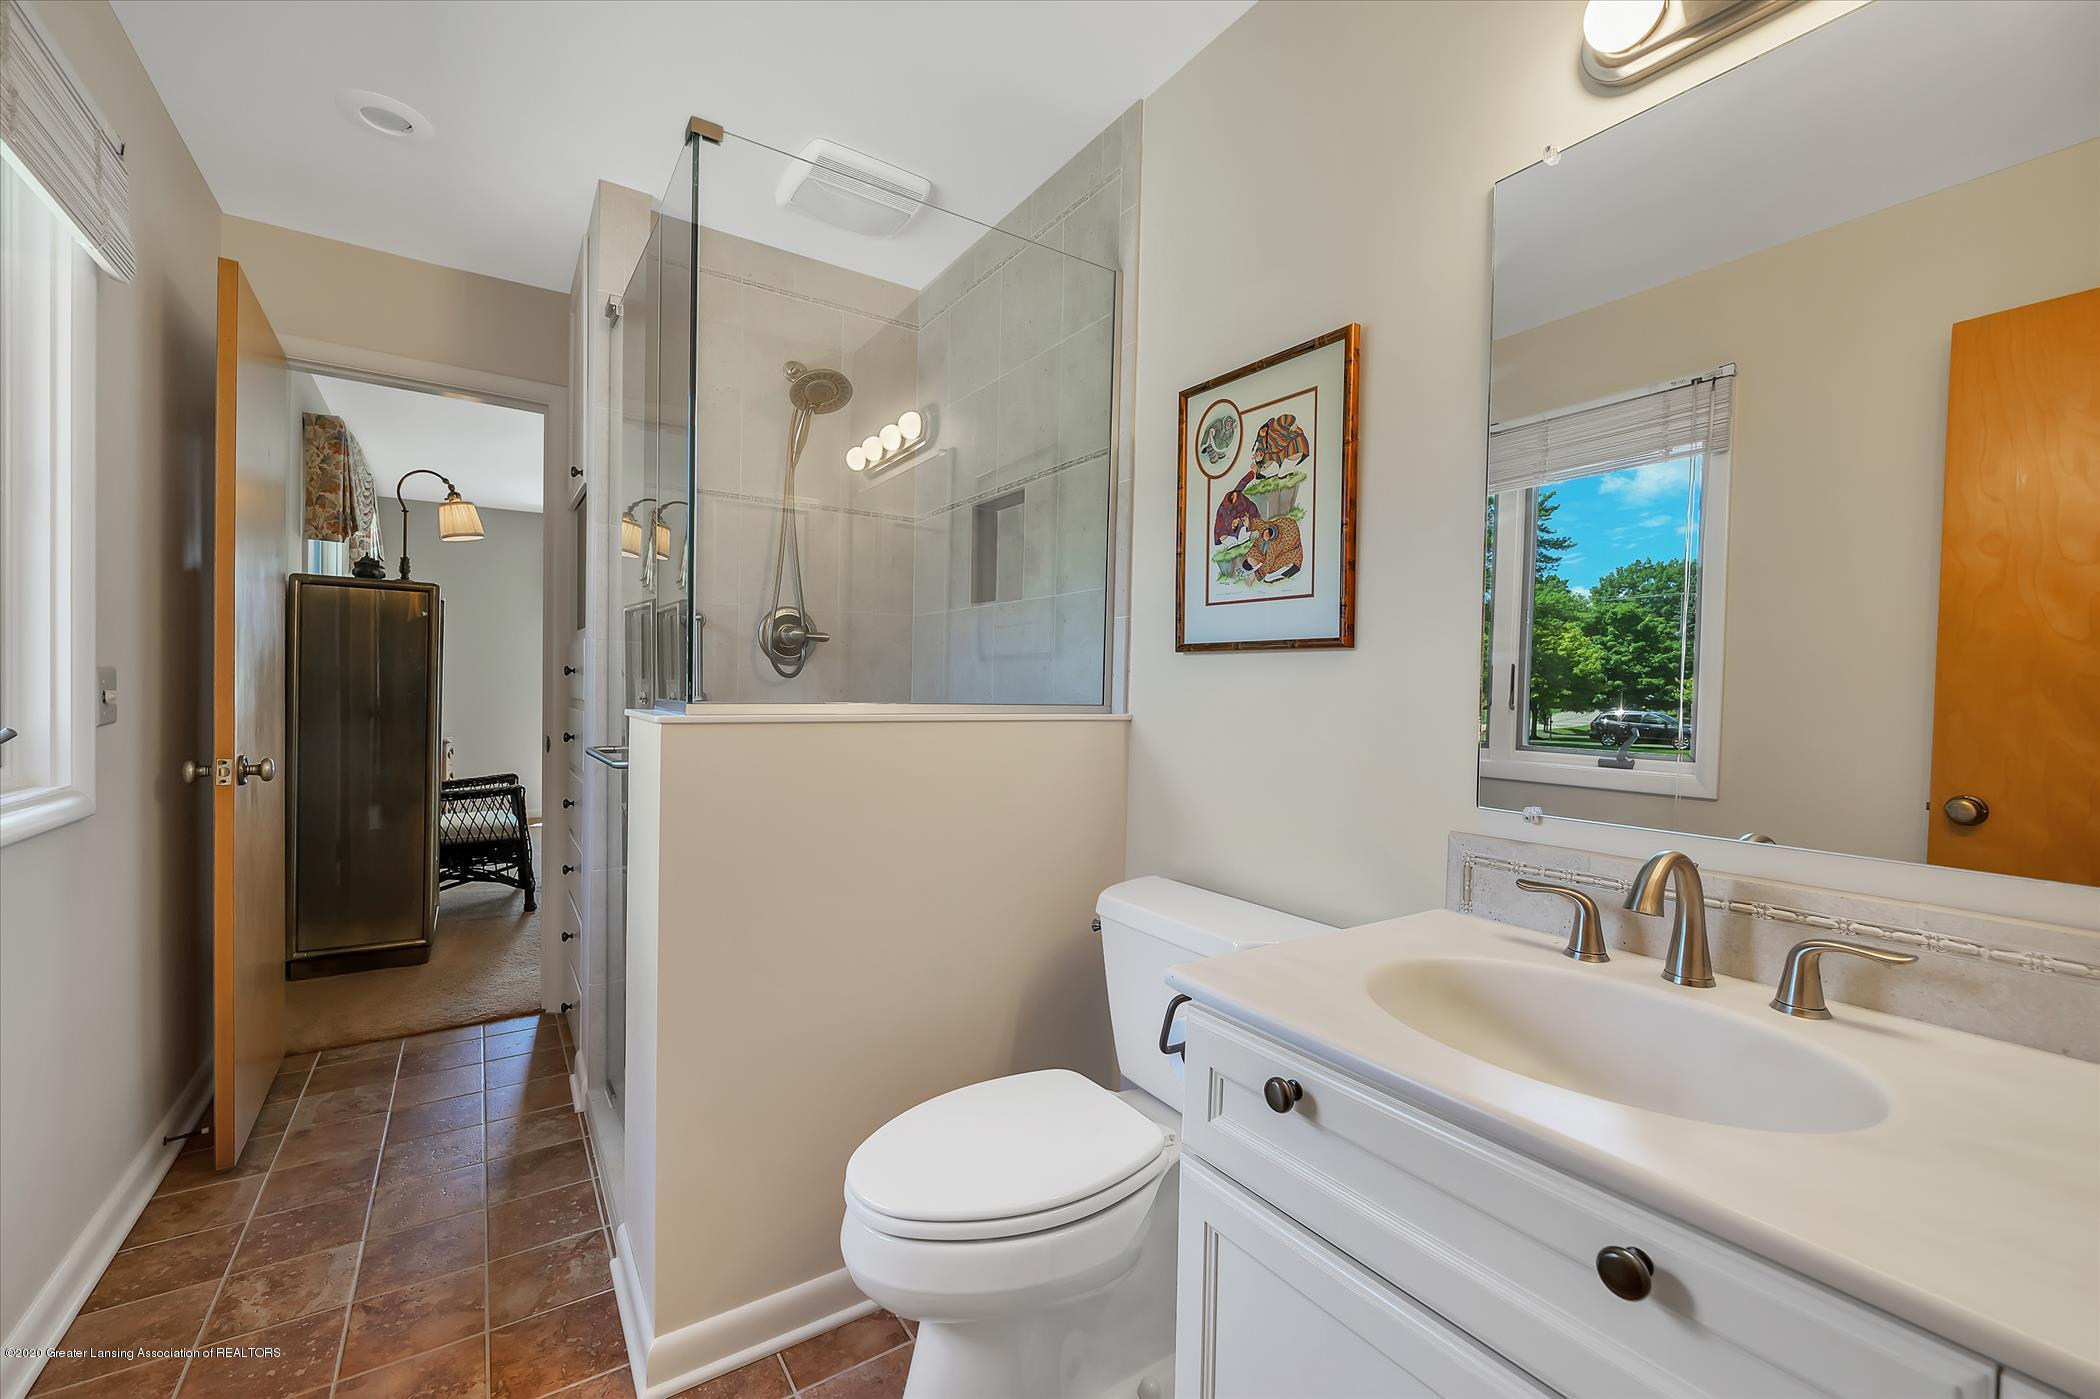 2114 Lagoon Dr - Remodeled Owner's Suite Bath - 17